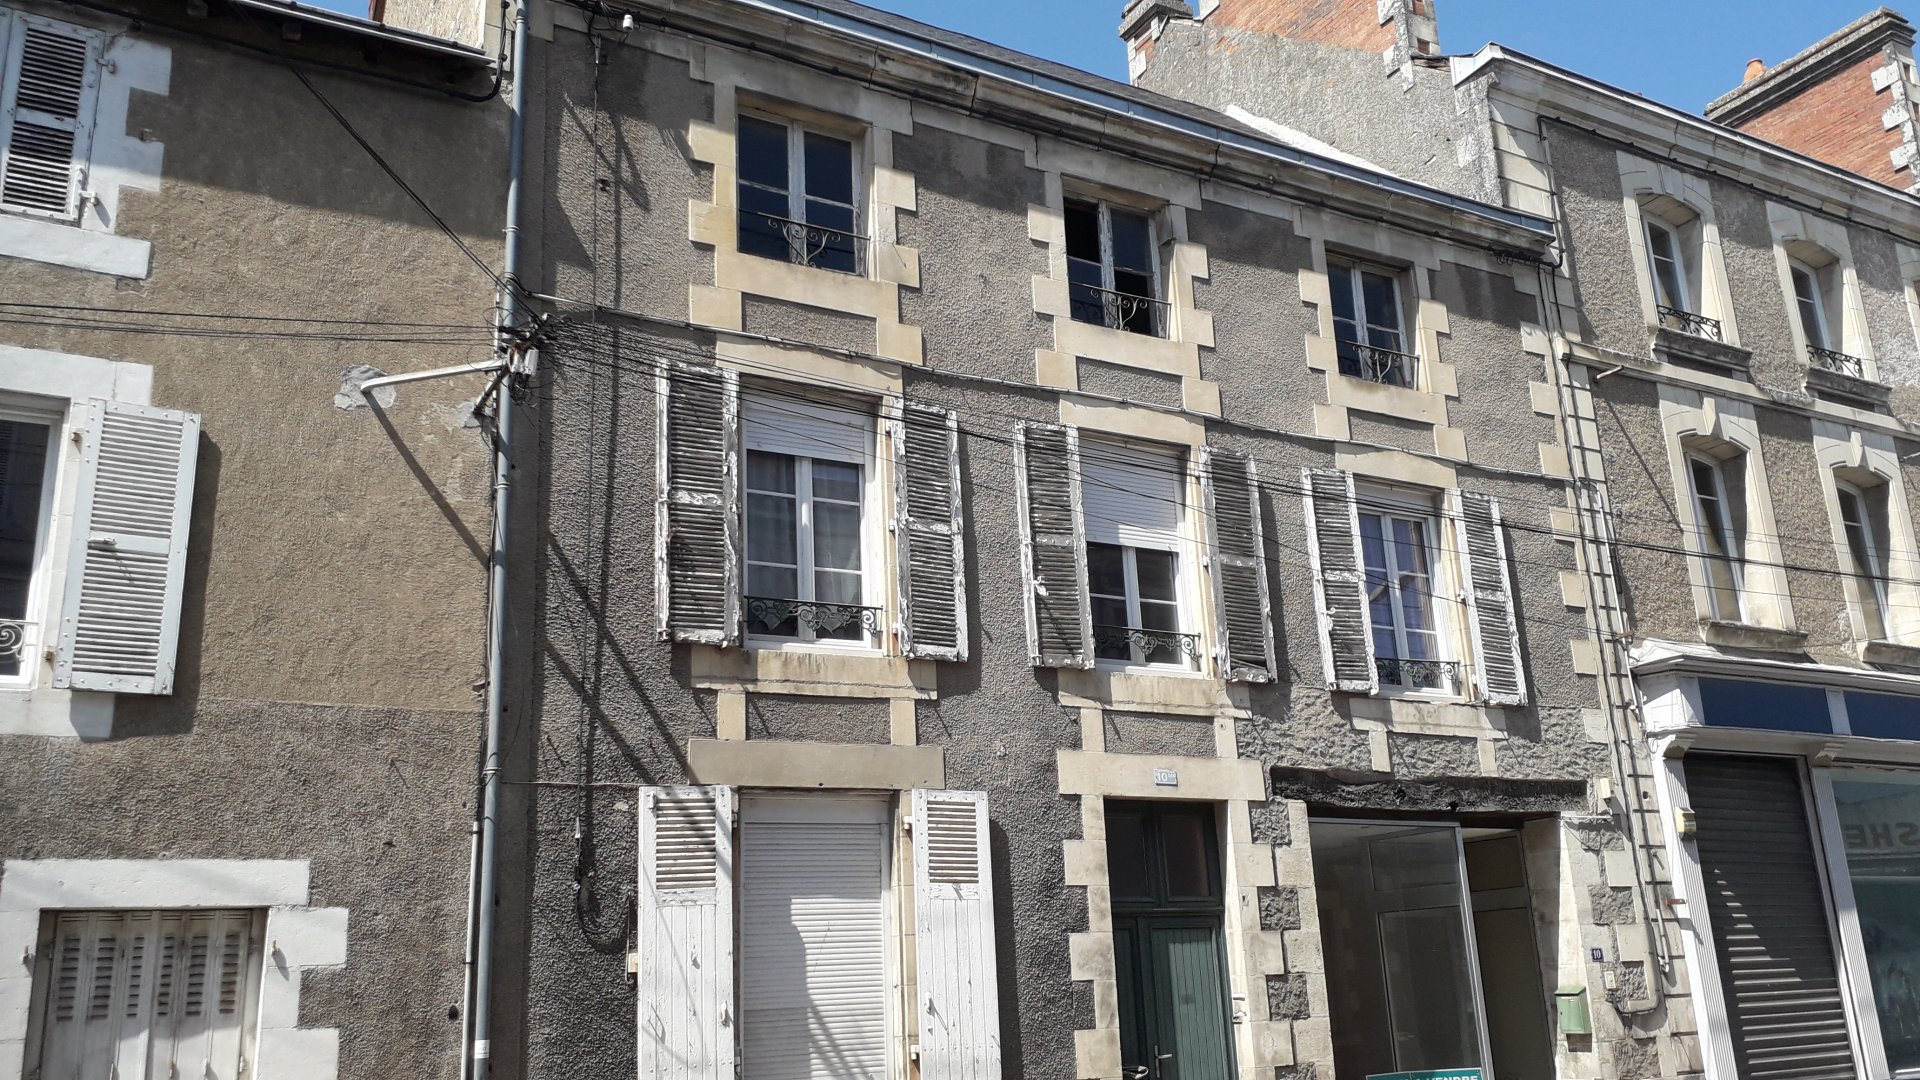 House and shop opportunity in superb town!!!